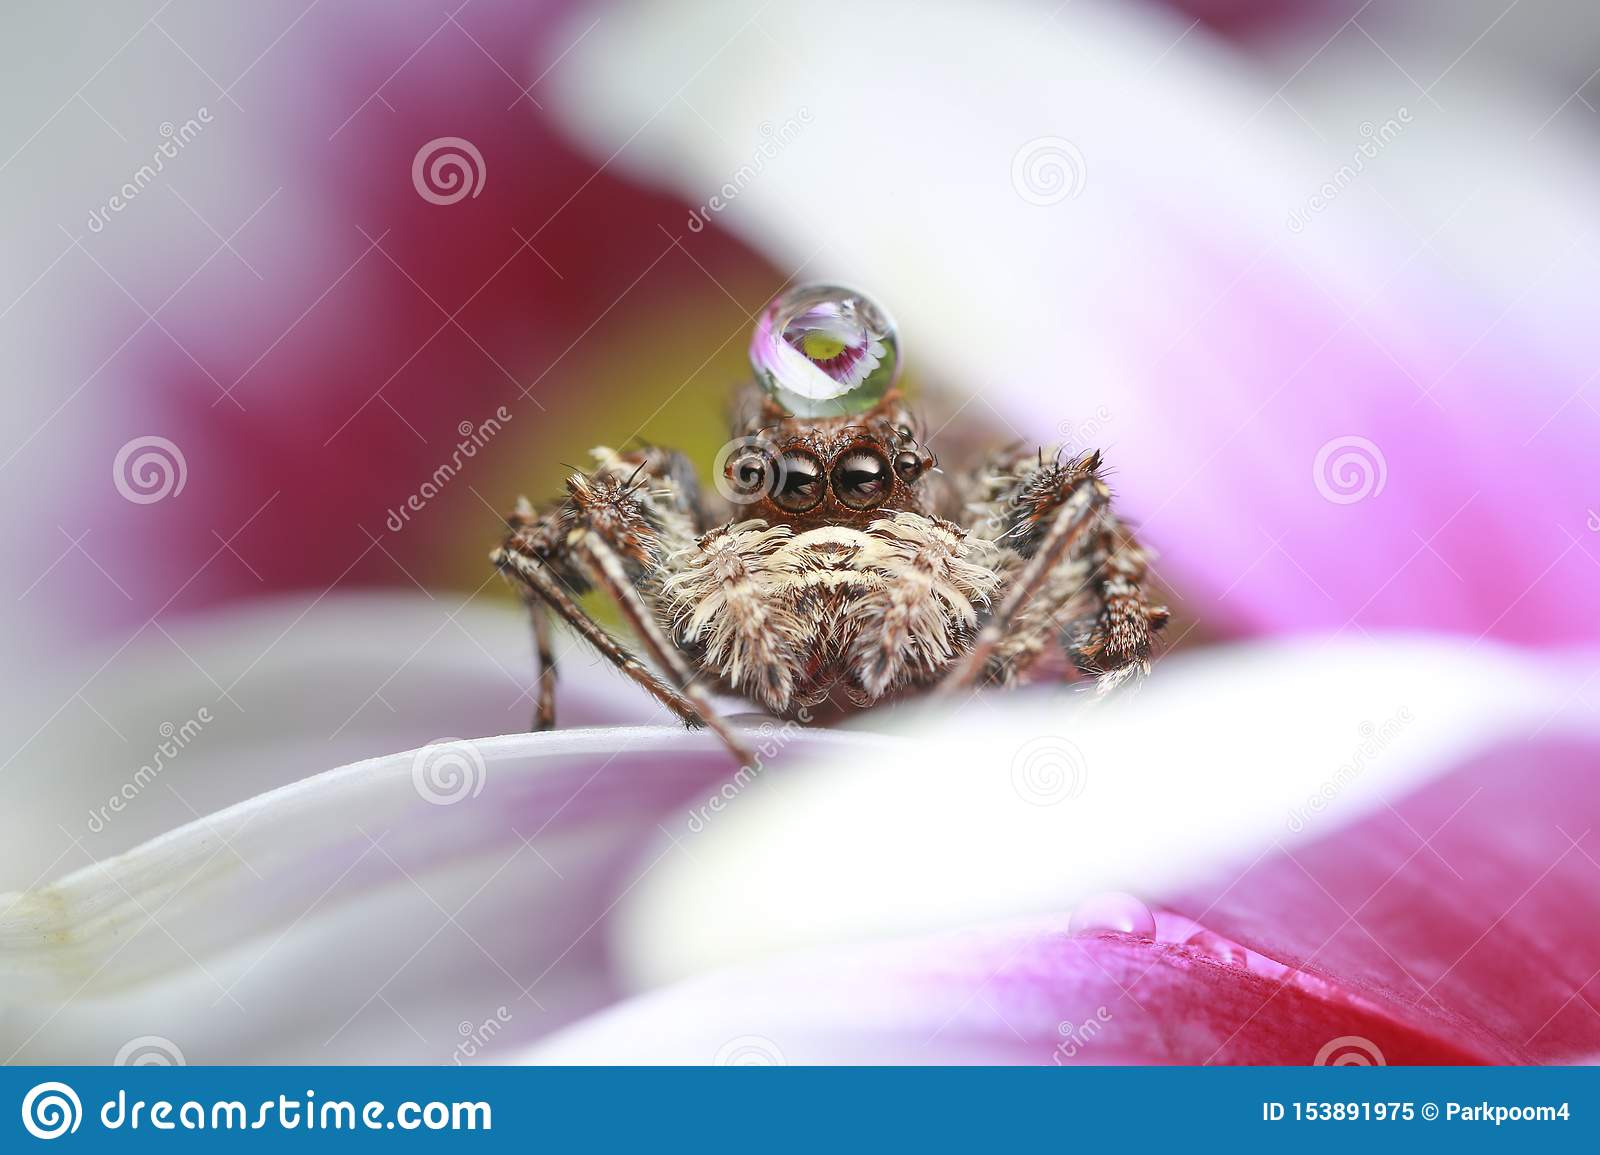 Jumping spider and water drop on pink flower in nature